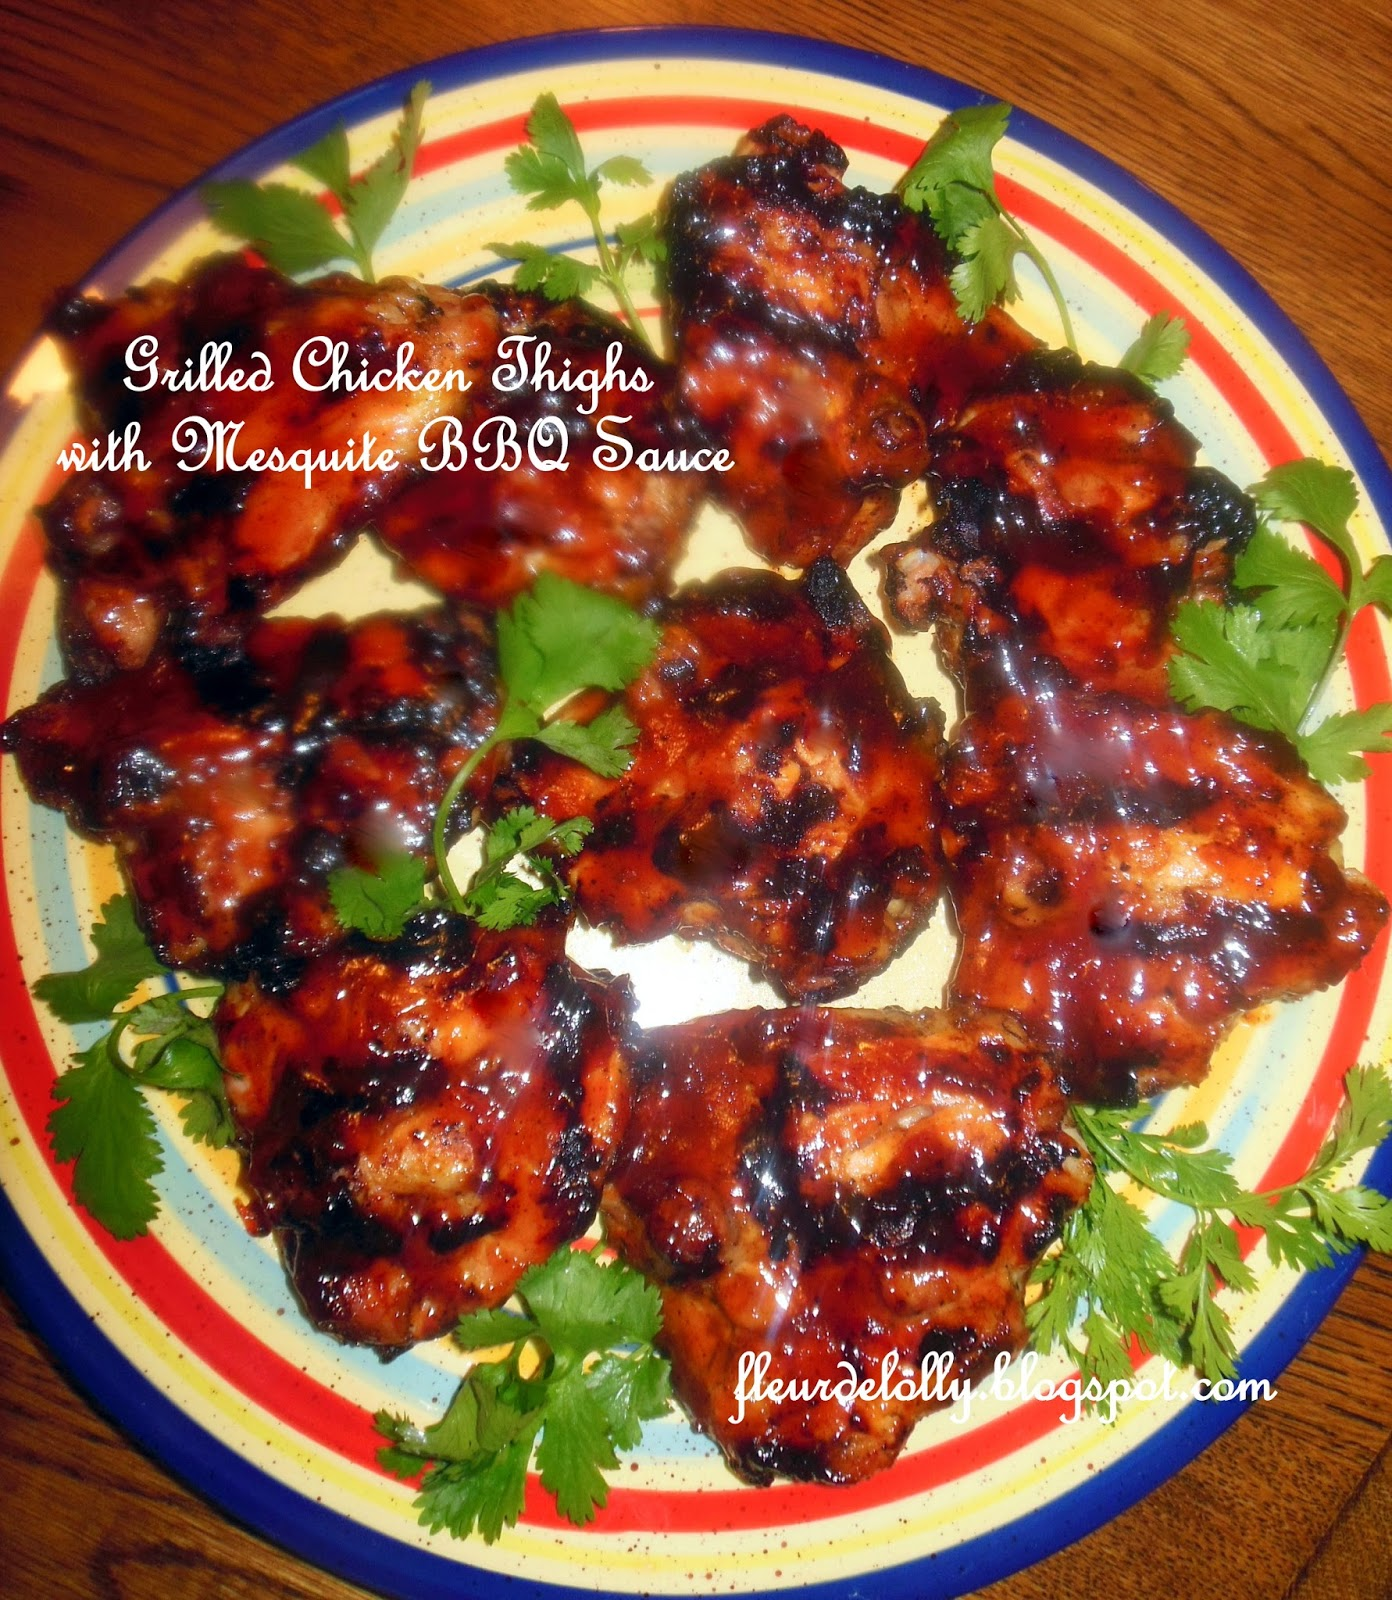 Fleur De Lolly: Grilled Chicken Thighs With Mesquite BBQ Sauce